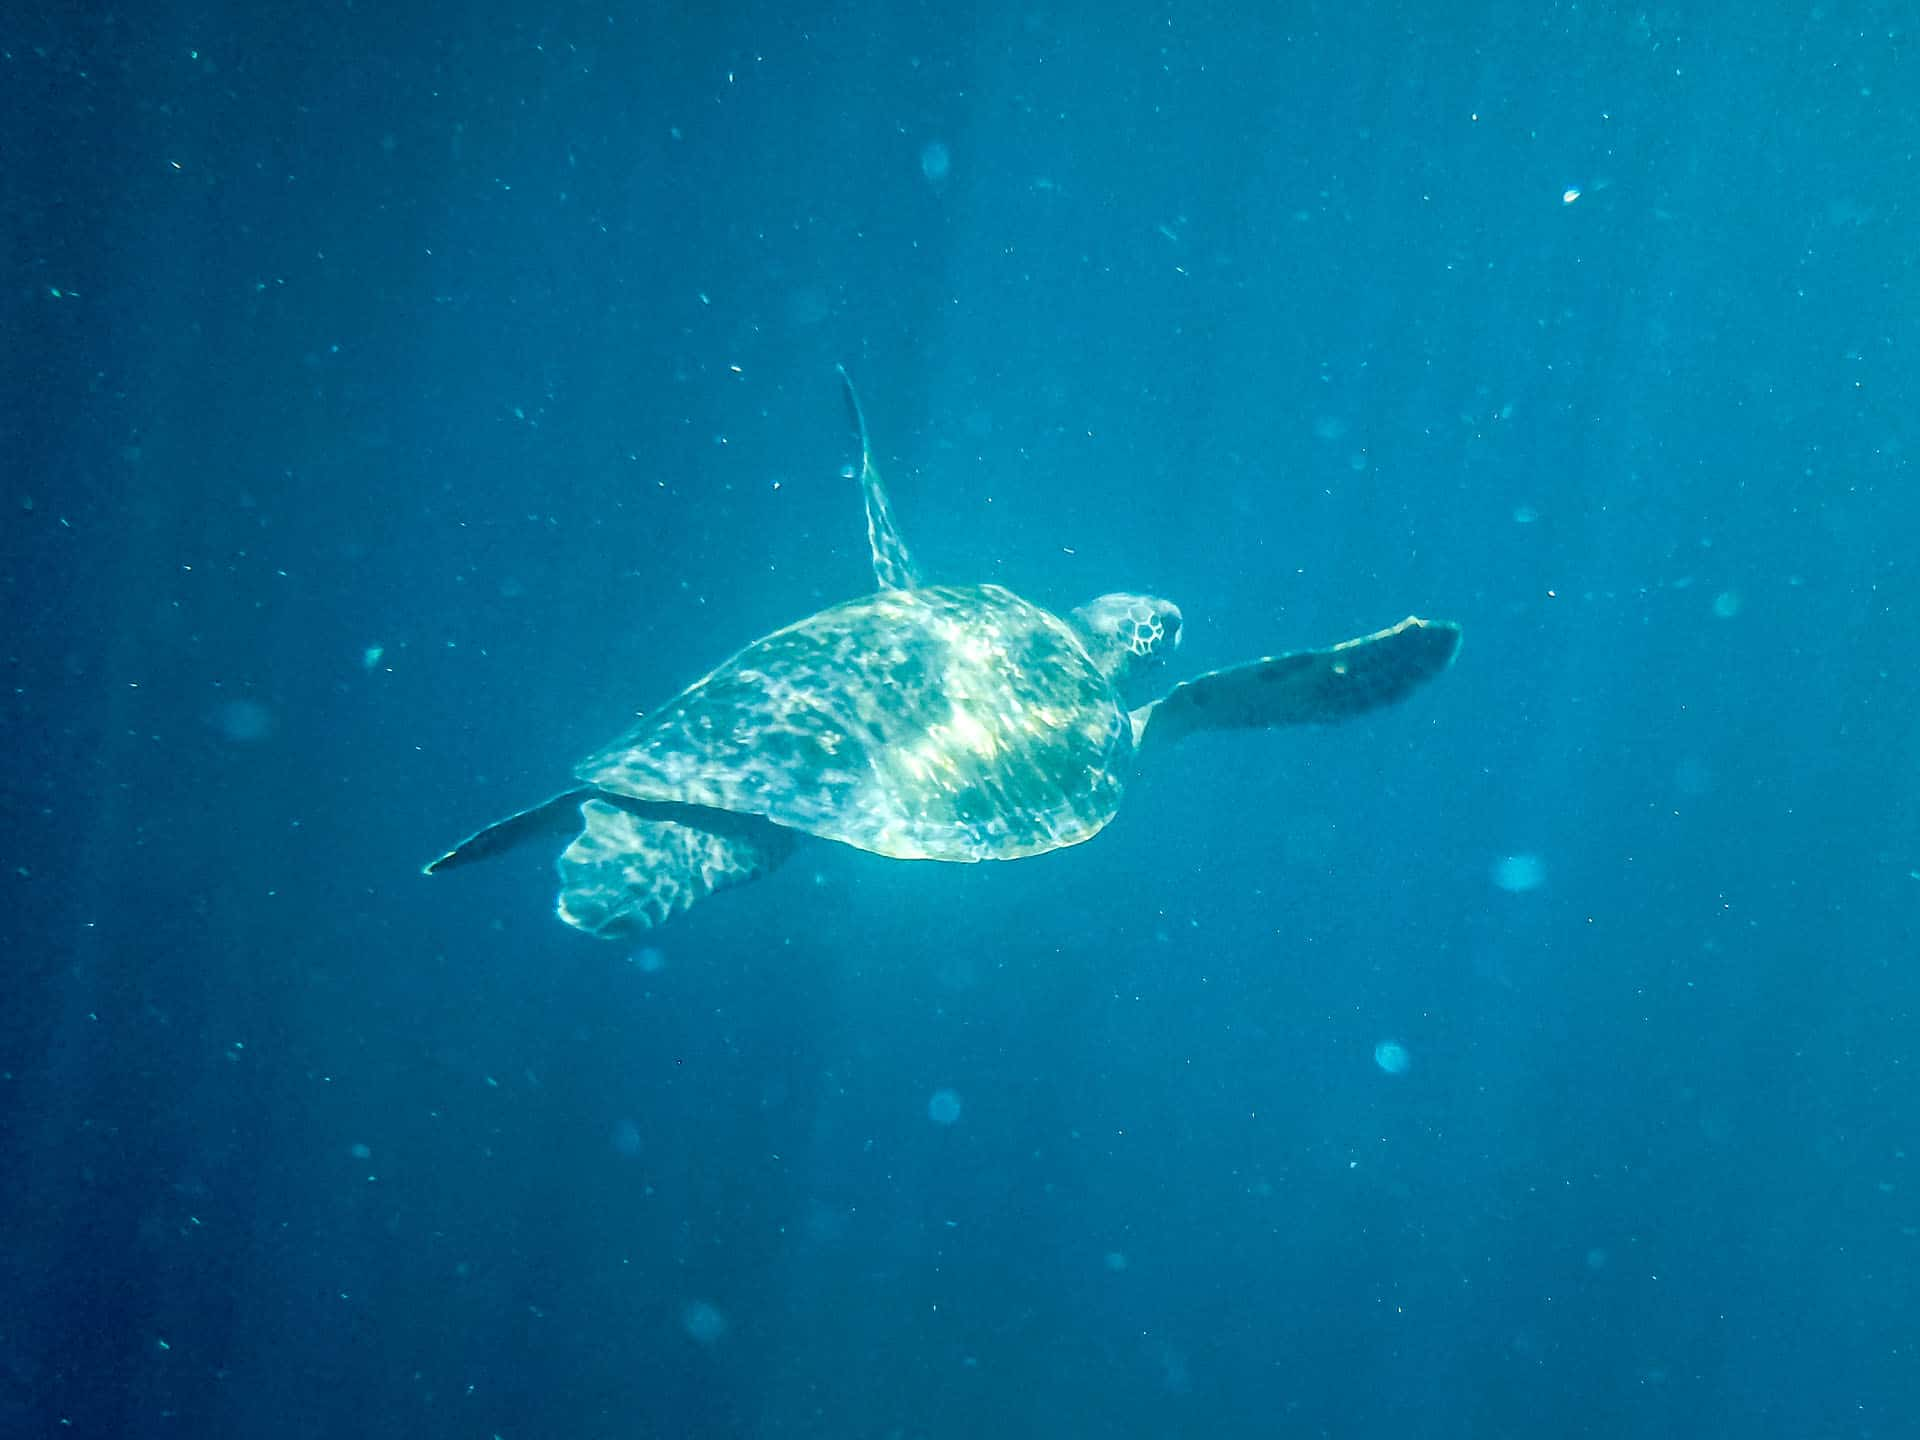 sea turtle in the galapagos islands waters